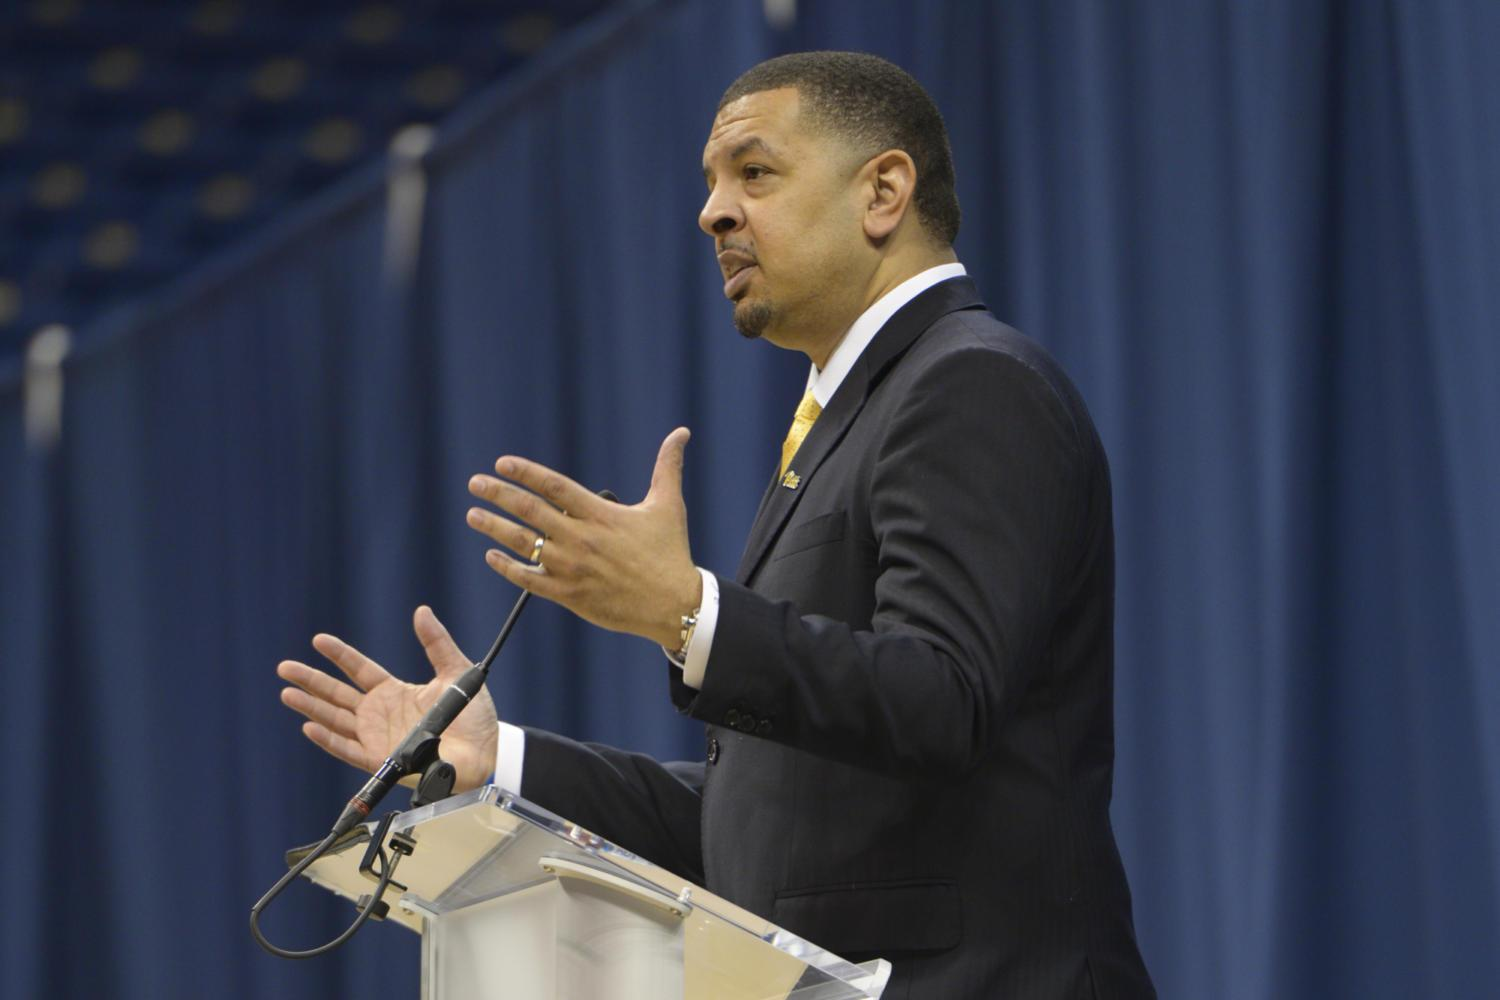 New head basketball coach Jeff Capel speaks at the Petersen Events Center Wednesday. (Photo by Mackenzie Rodrigues / Contributing Editor)